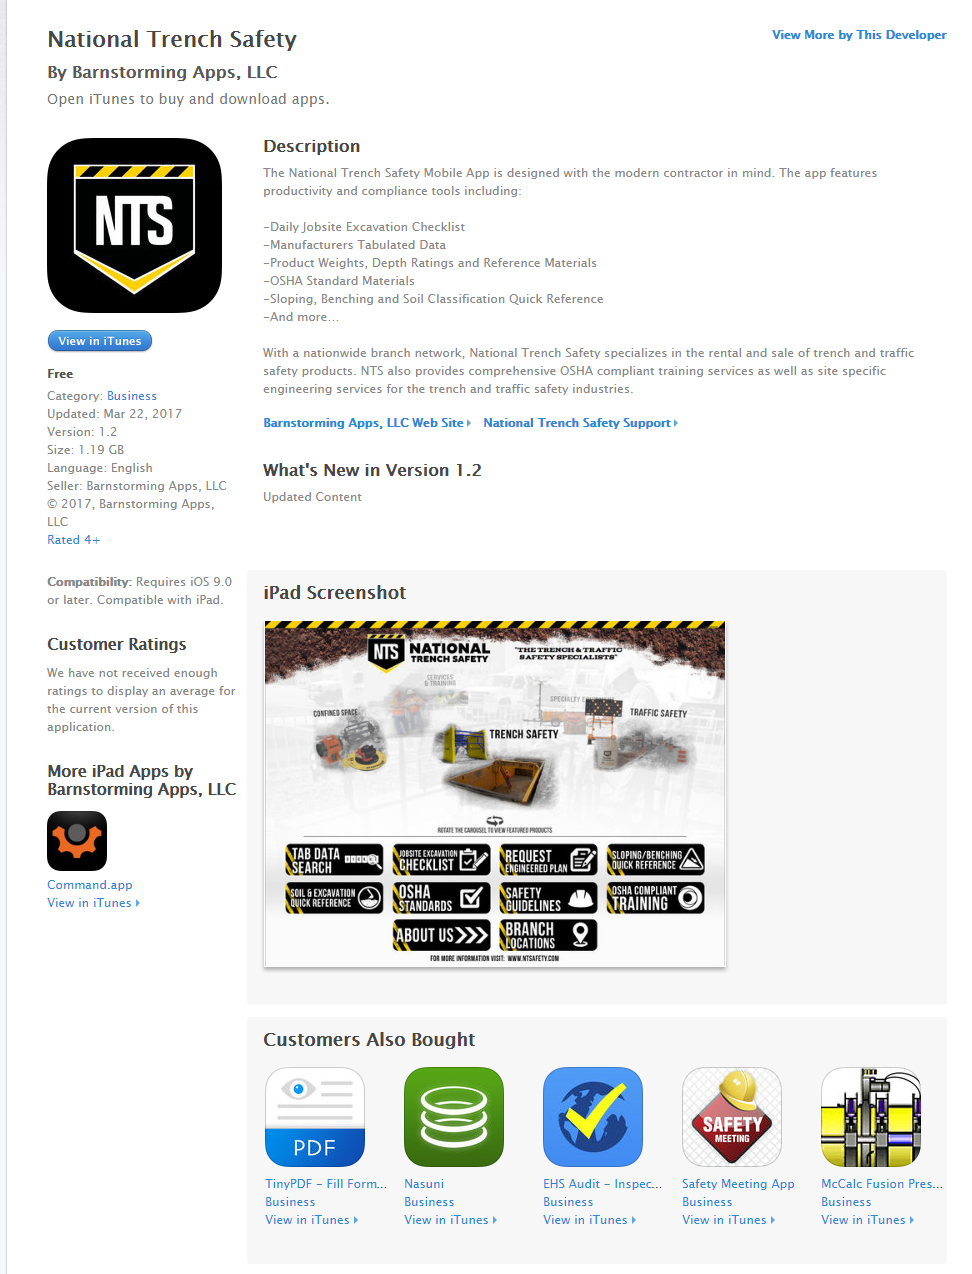 National Trench Safety Releases Mobile App For The Excavation Industry Ehs Safety News America